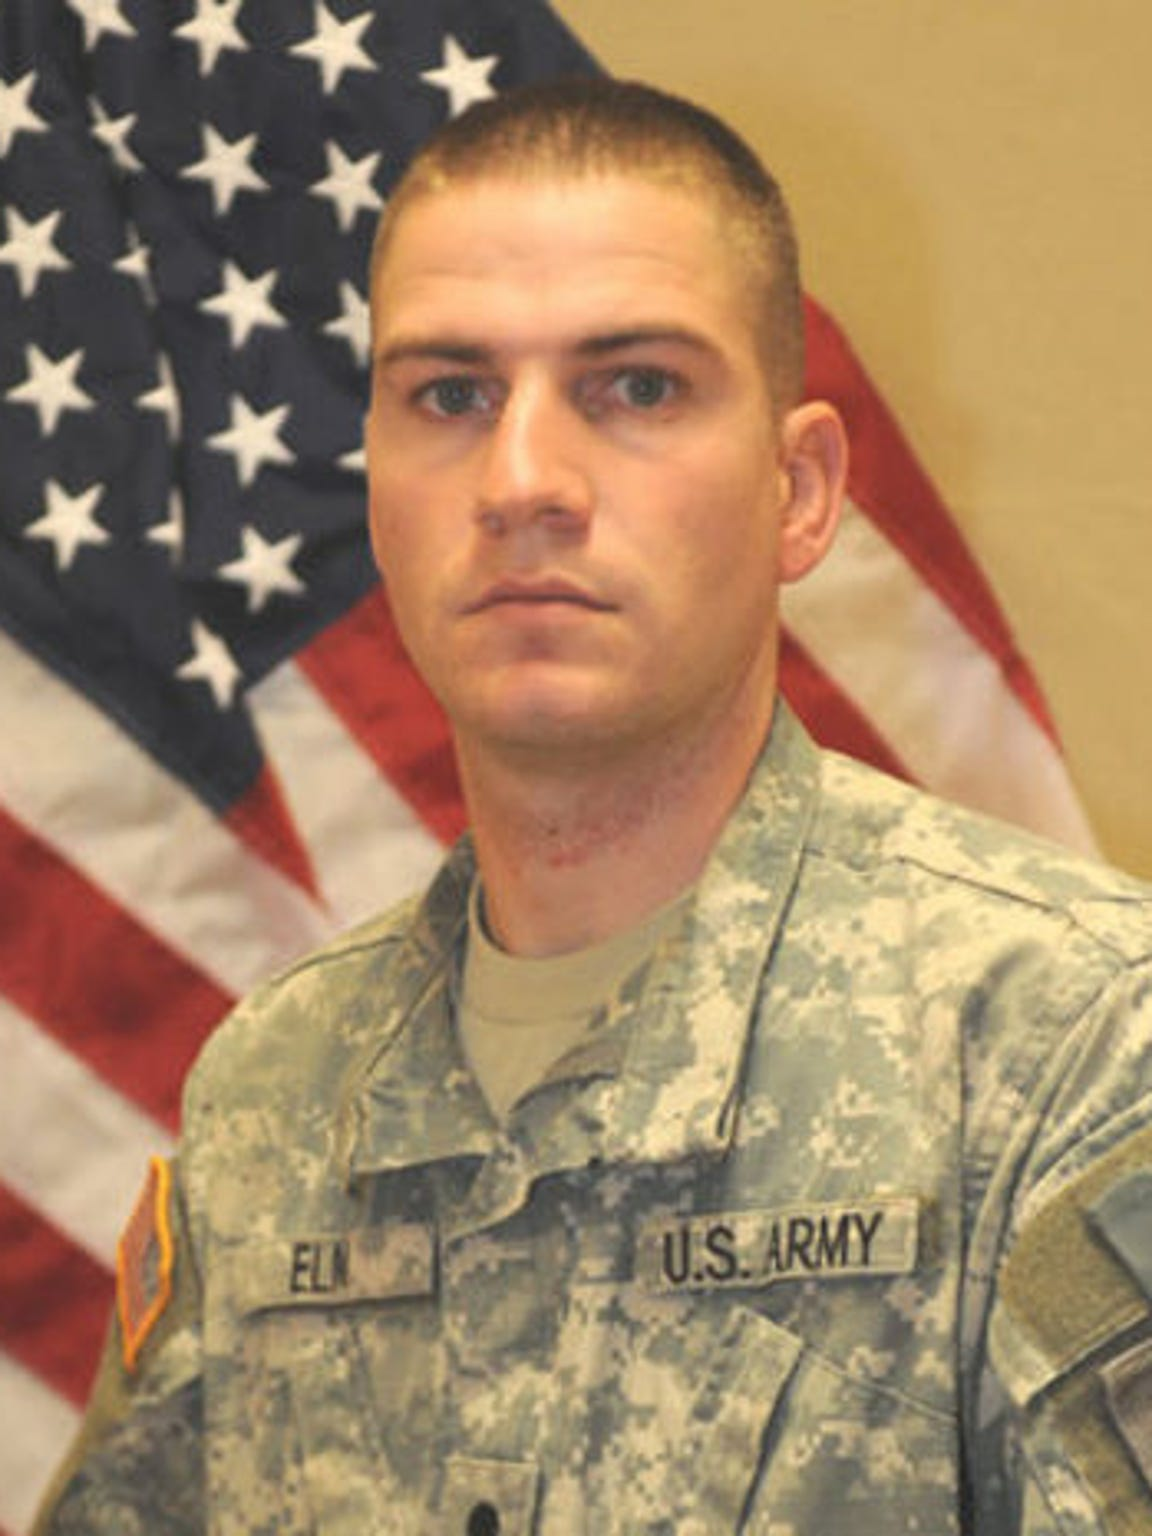 Michael Elm, 25, of Phoenix, died Oct. 14, 2011, of wounds suffered when insurgents attacked his unit with an improvised explosive device in Afghanistan. He was assigned to Company A, 1st Battalion, 26th Infantry Regiment, 3rd Brigade Combat Team, Fort Knox, Ky.